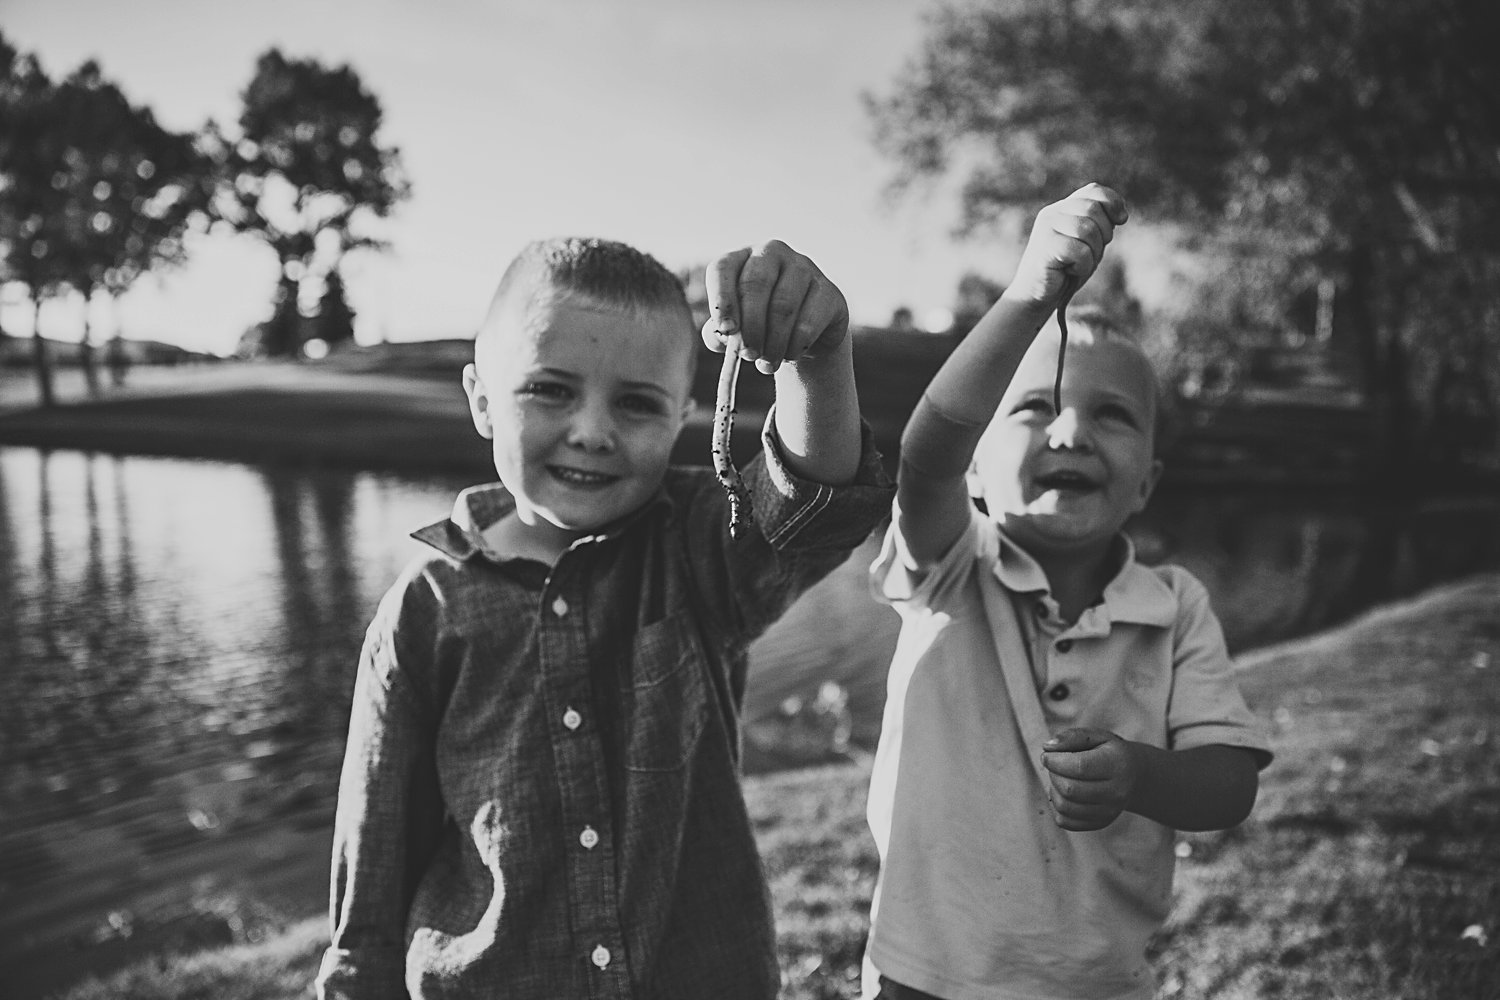 Lifestyle portrait of two young boys